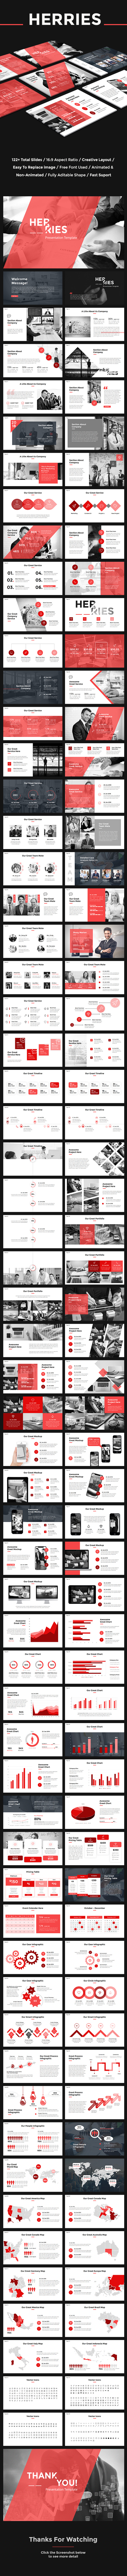 Herries Clean Business Pitch Deck Keynote - Keynote Templates Presentation Templates